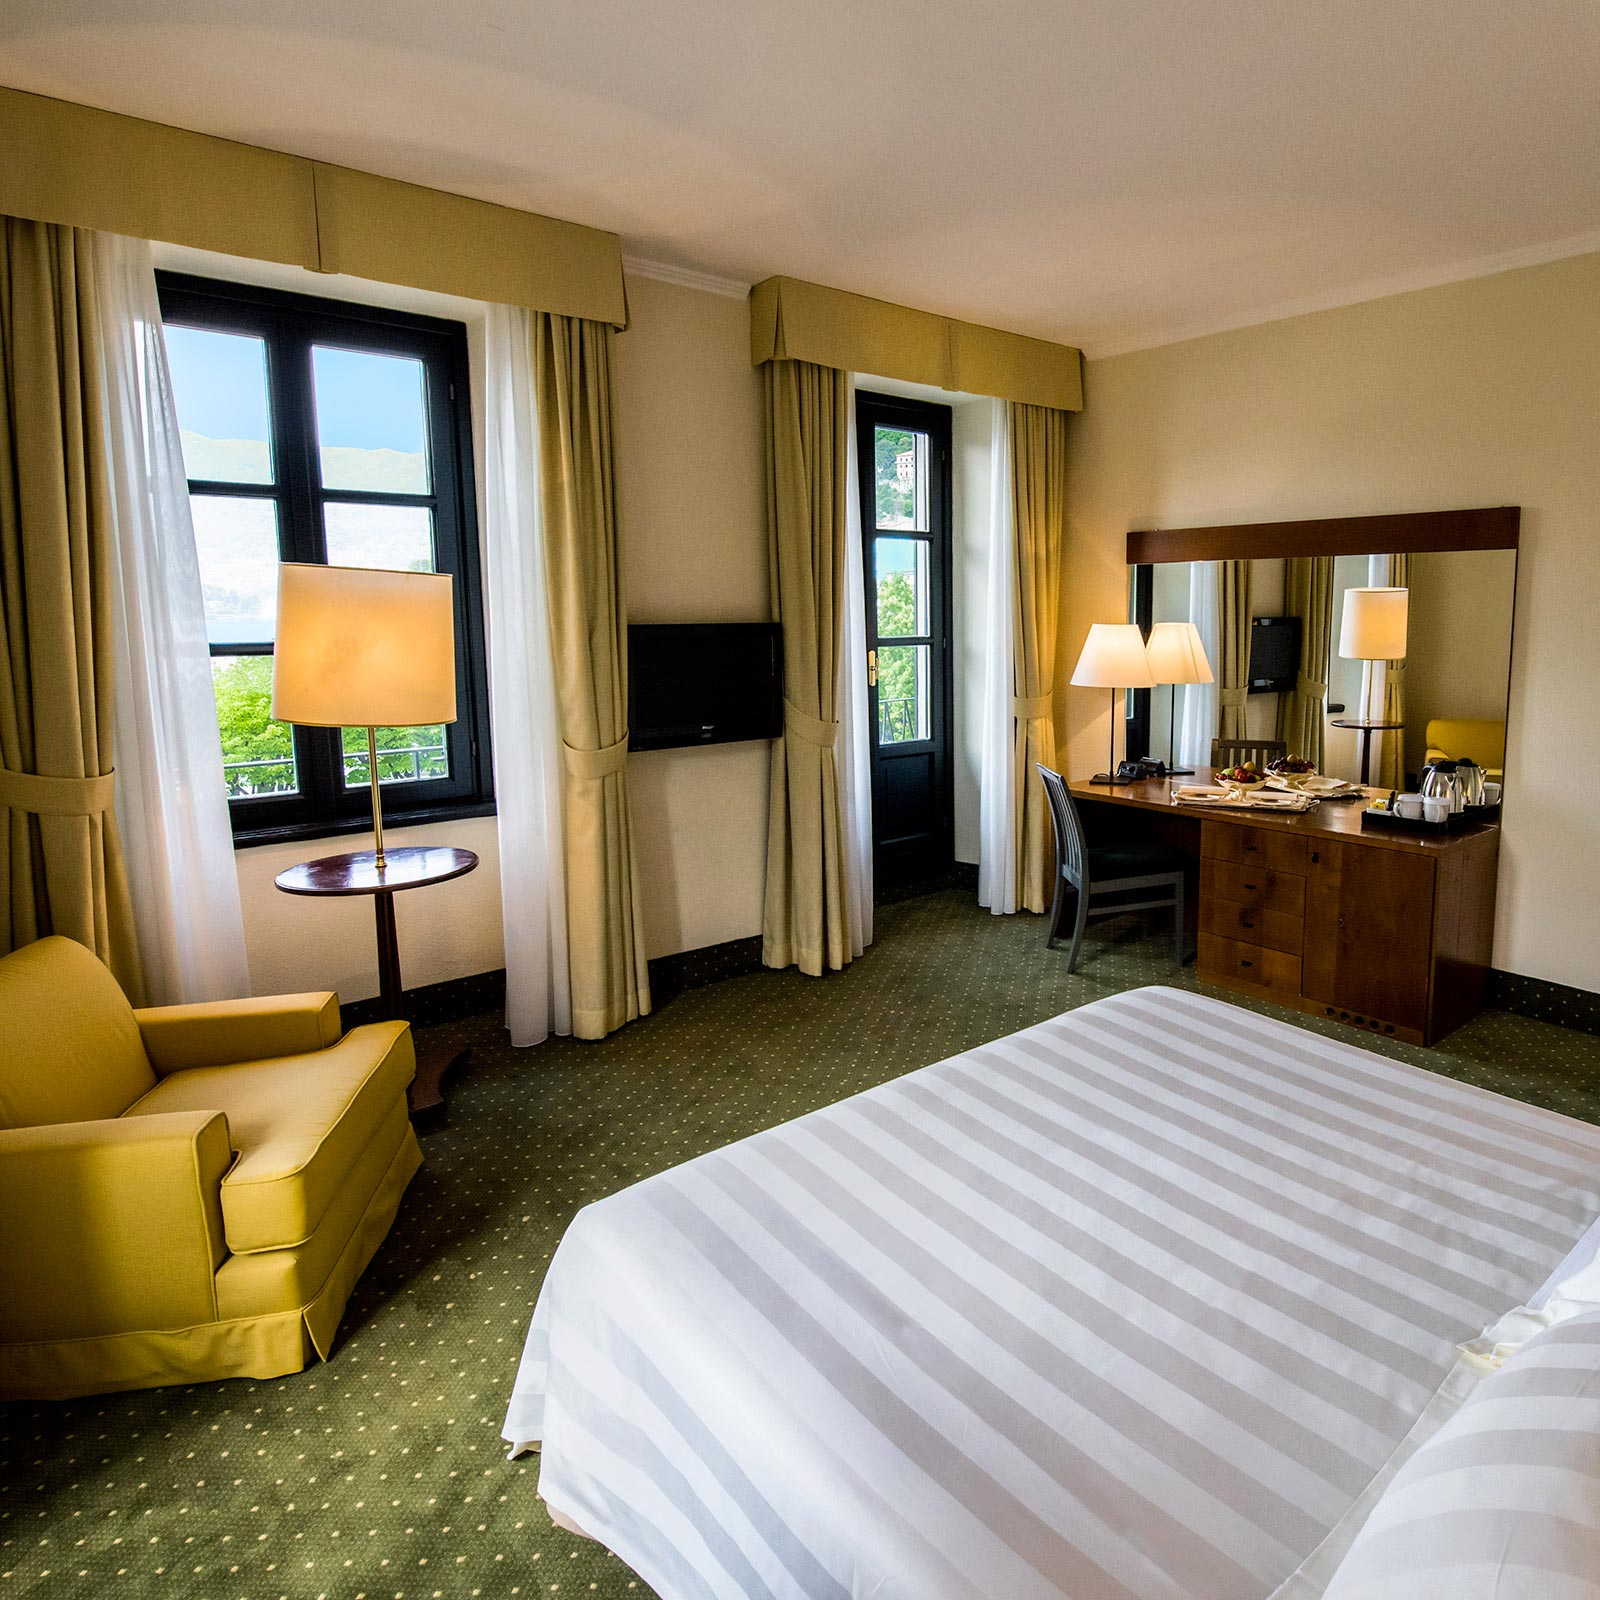 Palace hotel 4 stelle hotel a como camere vista lago palace hotel - Aprite le finestre ...